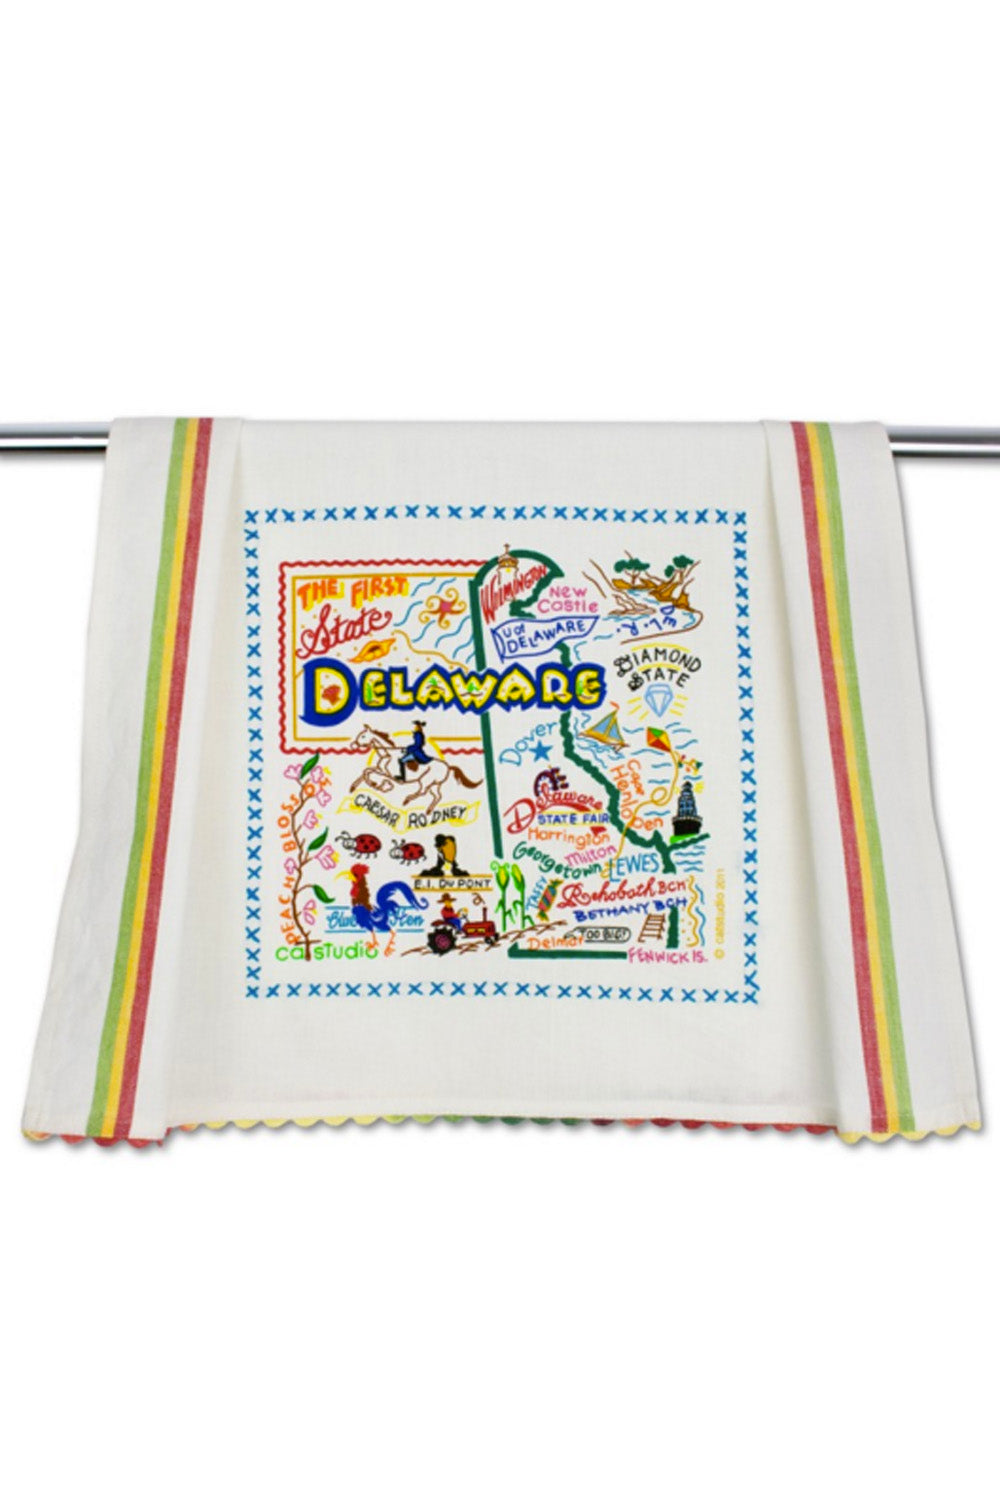 Embroidered Dish Towel - Delaware